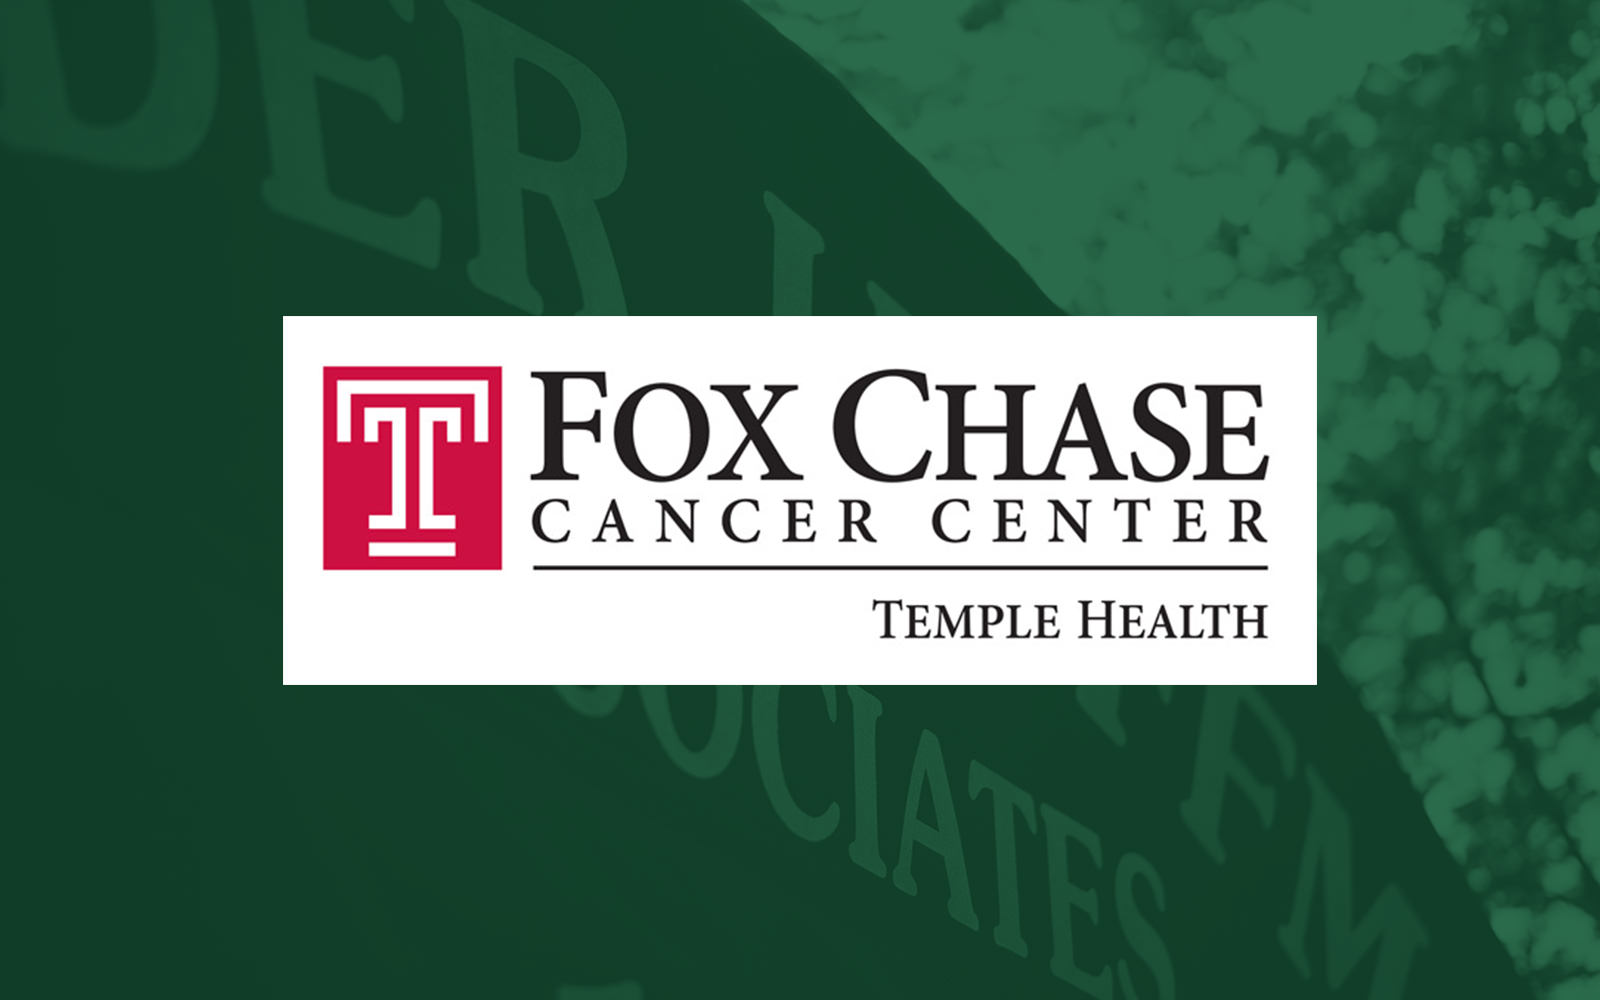 Fox Chase Cancer Center/Jeanes Hospital